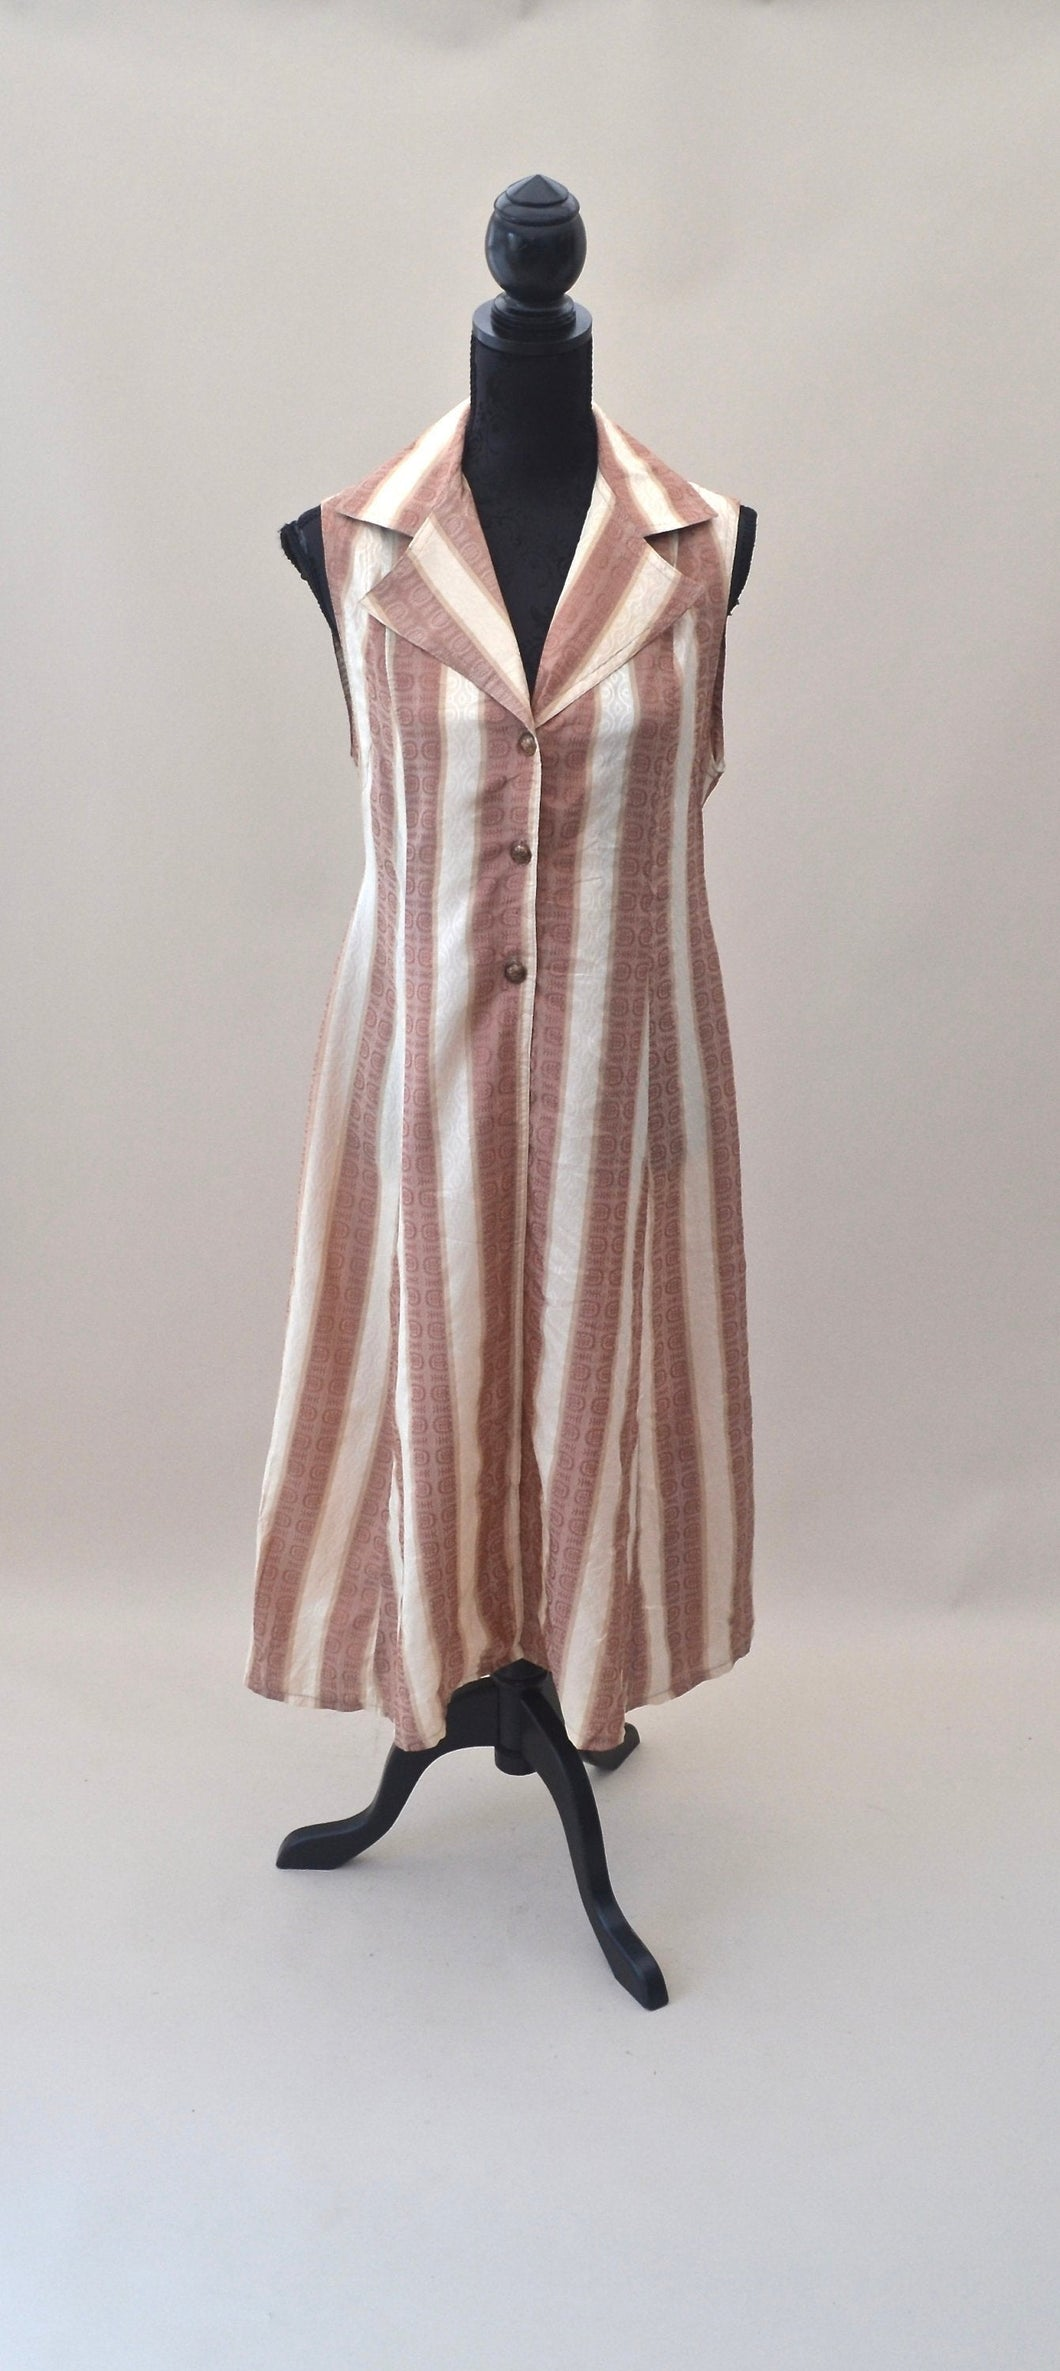 1970s Long dress | waist coat dress | Brown and white dress | Striped dress | Est UK size 8/10